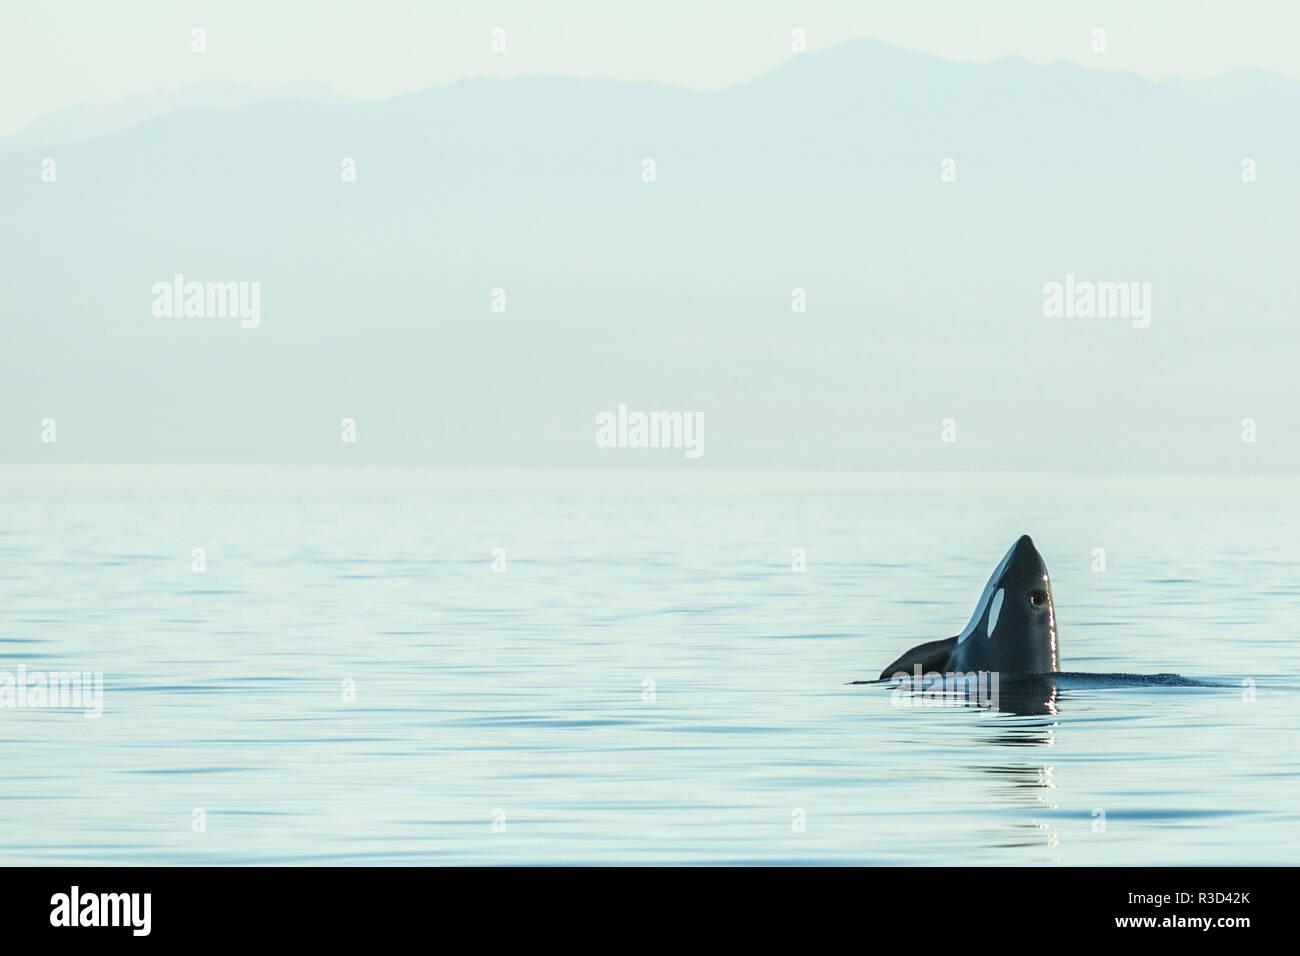 Spyhopping orca from Pod of resident Orca Whales (Orcinus orca) in Haro Strait near San Juan Island, WA, USA - Stock Image